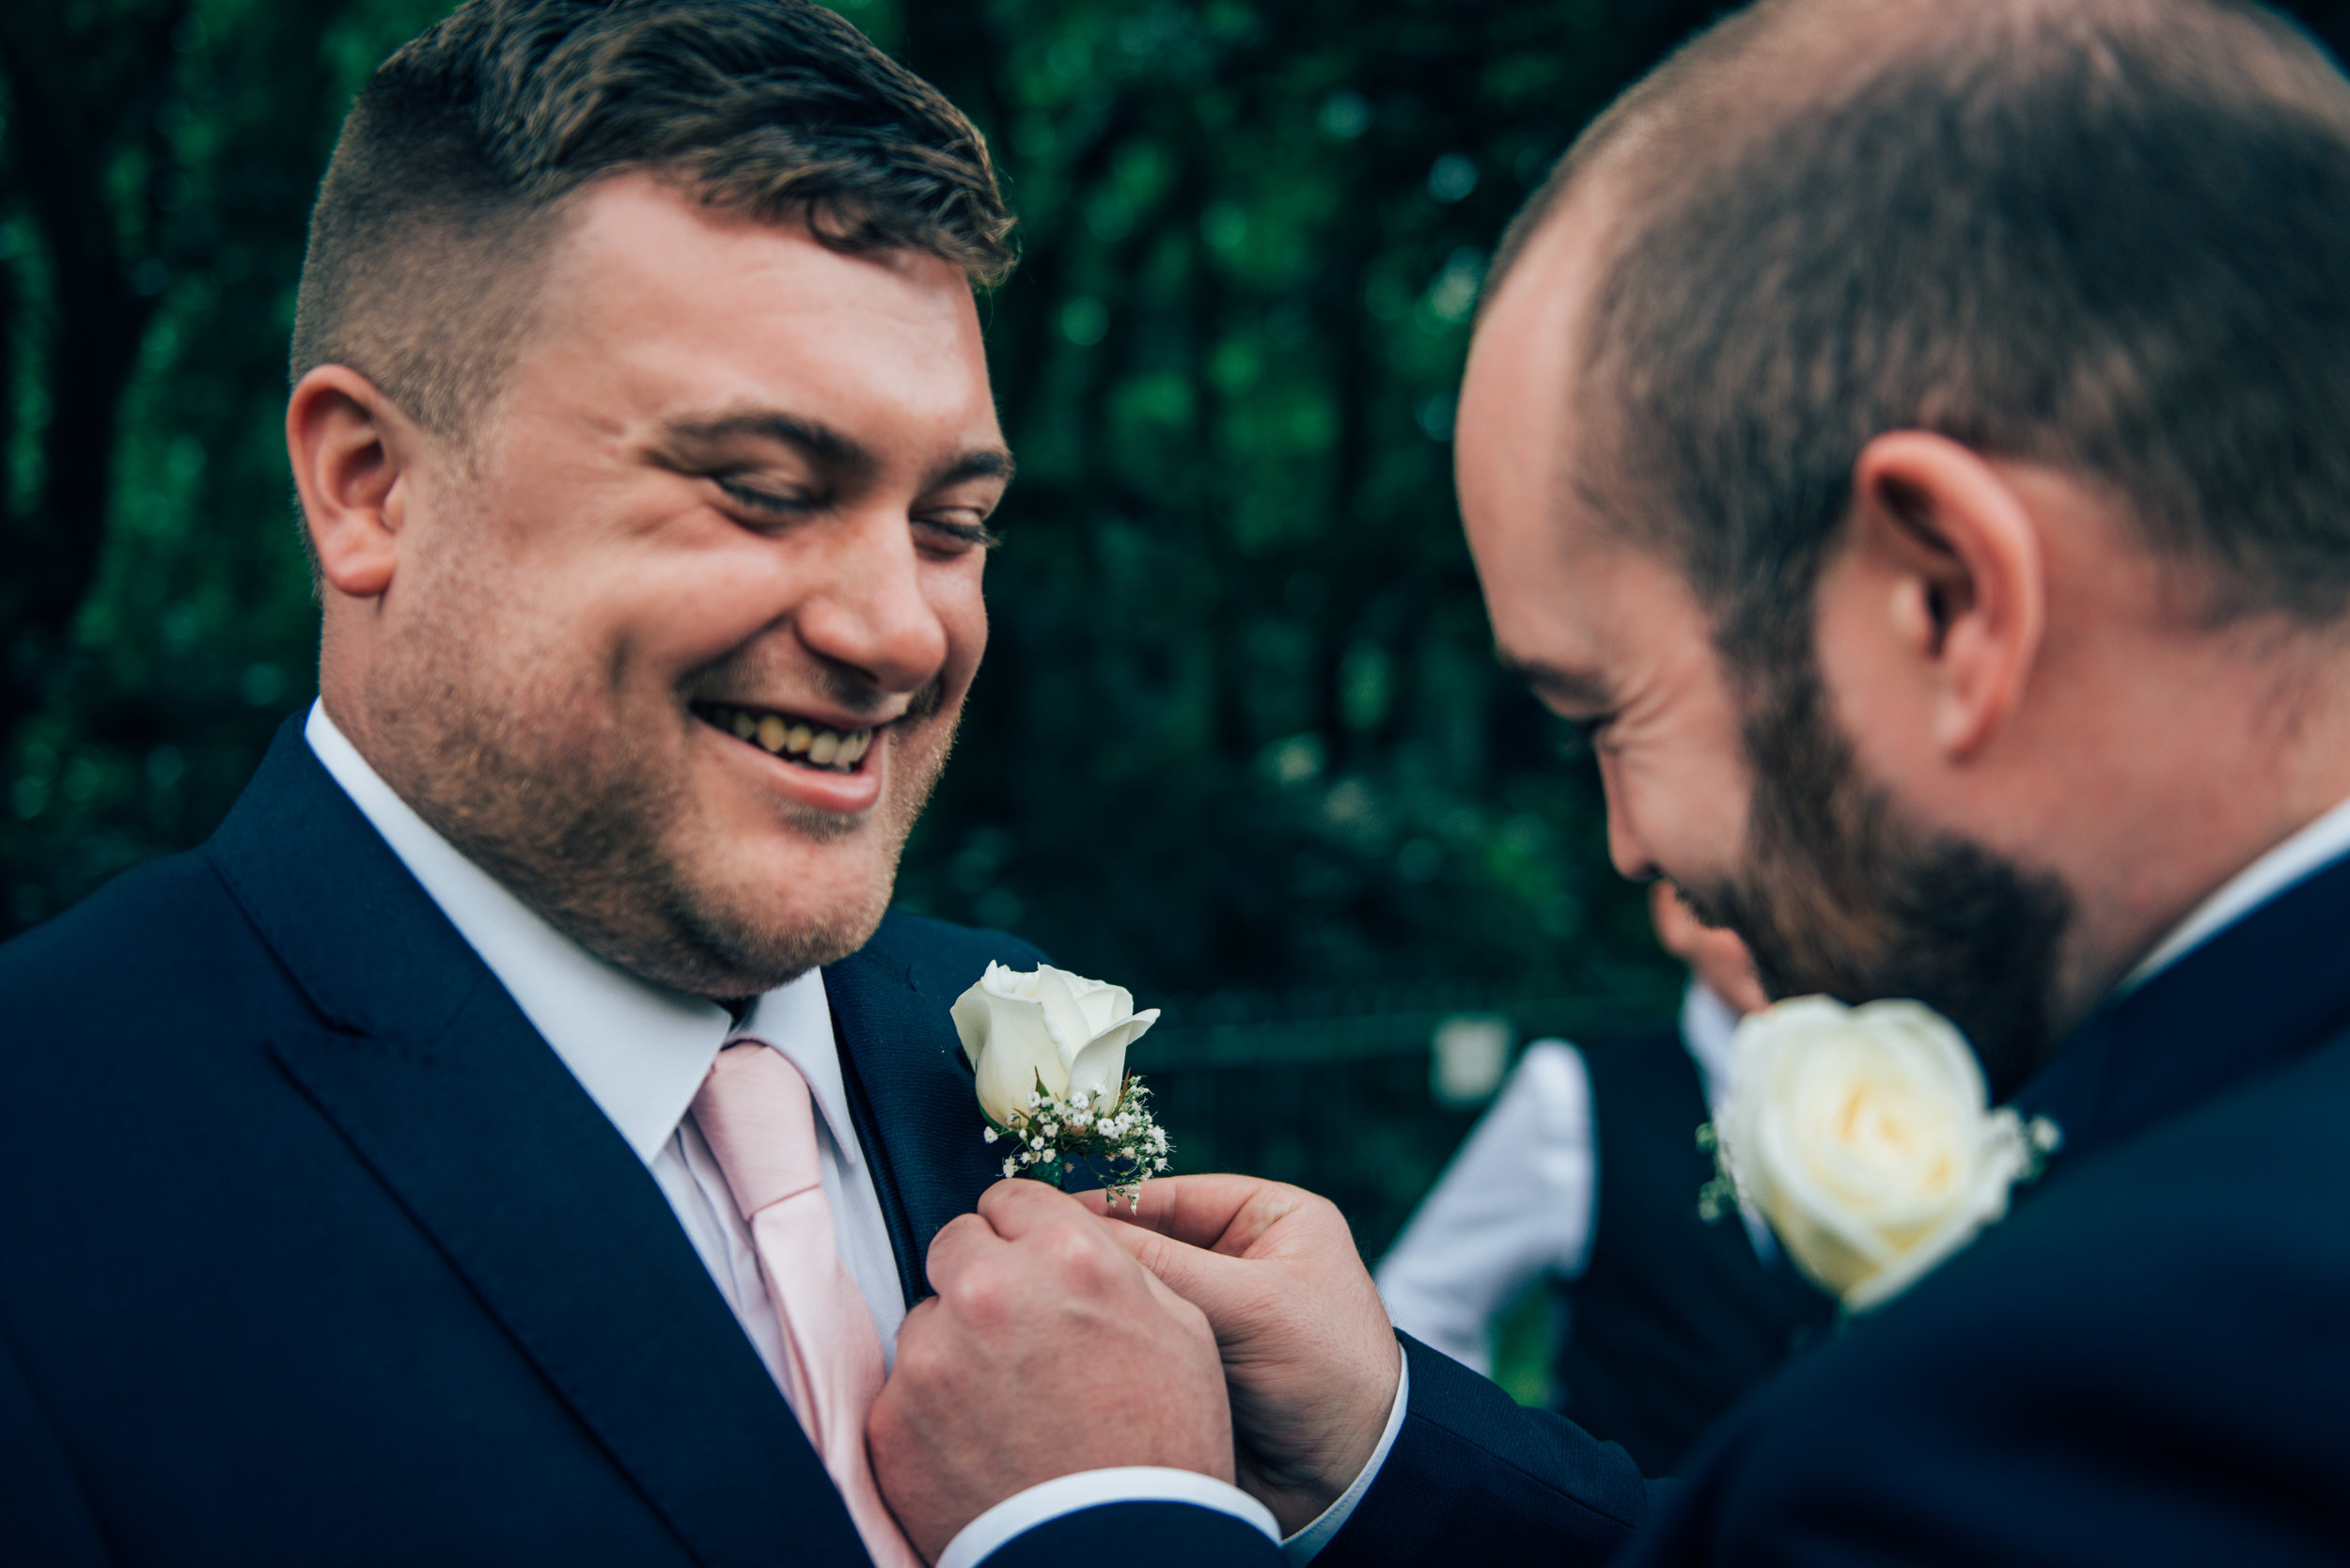 Groom and Best Man with Boutonniere